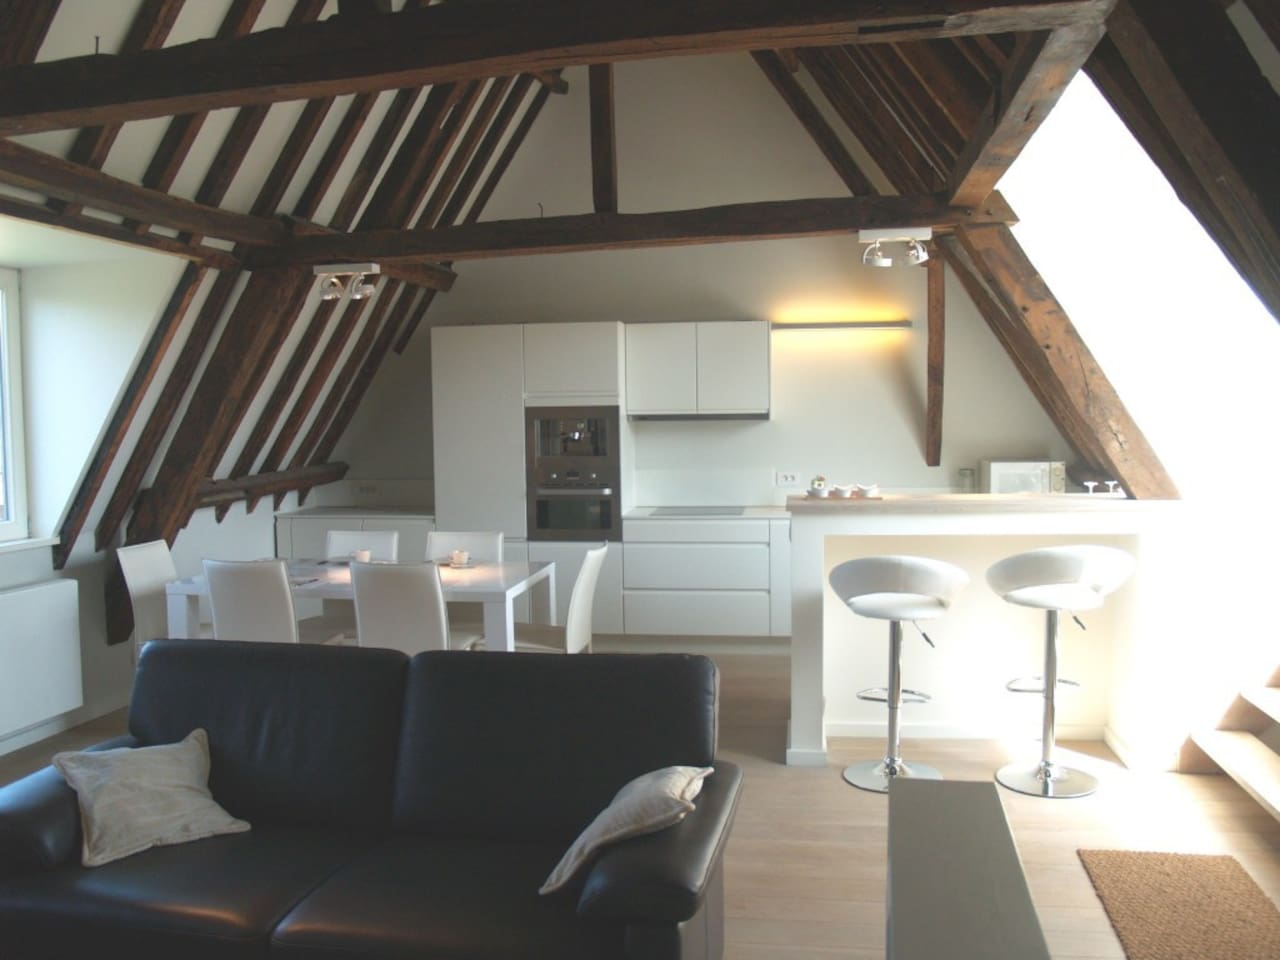 The top 20 lofts for rent in bruges   airbnb: de lofts, private ...